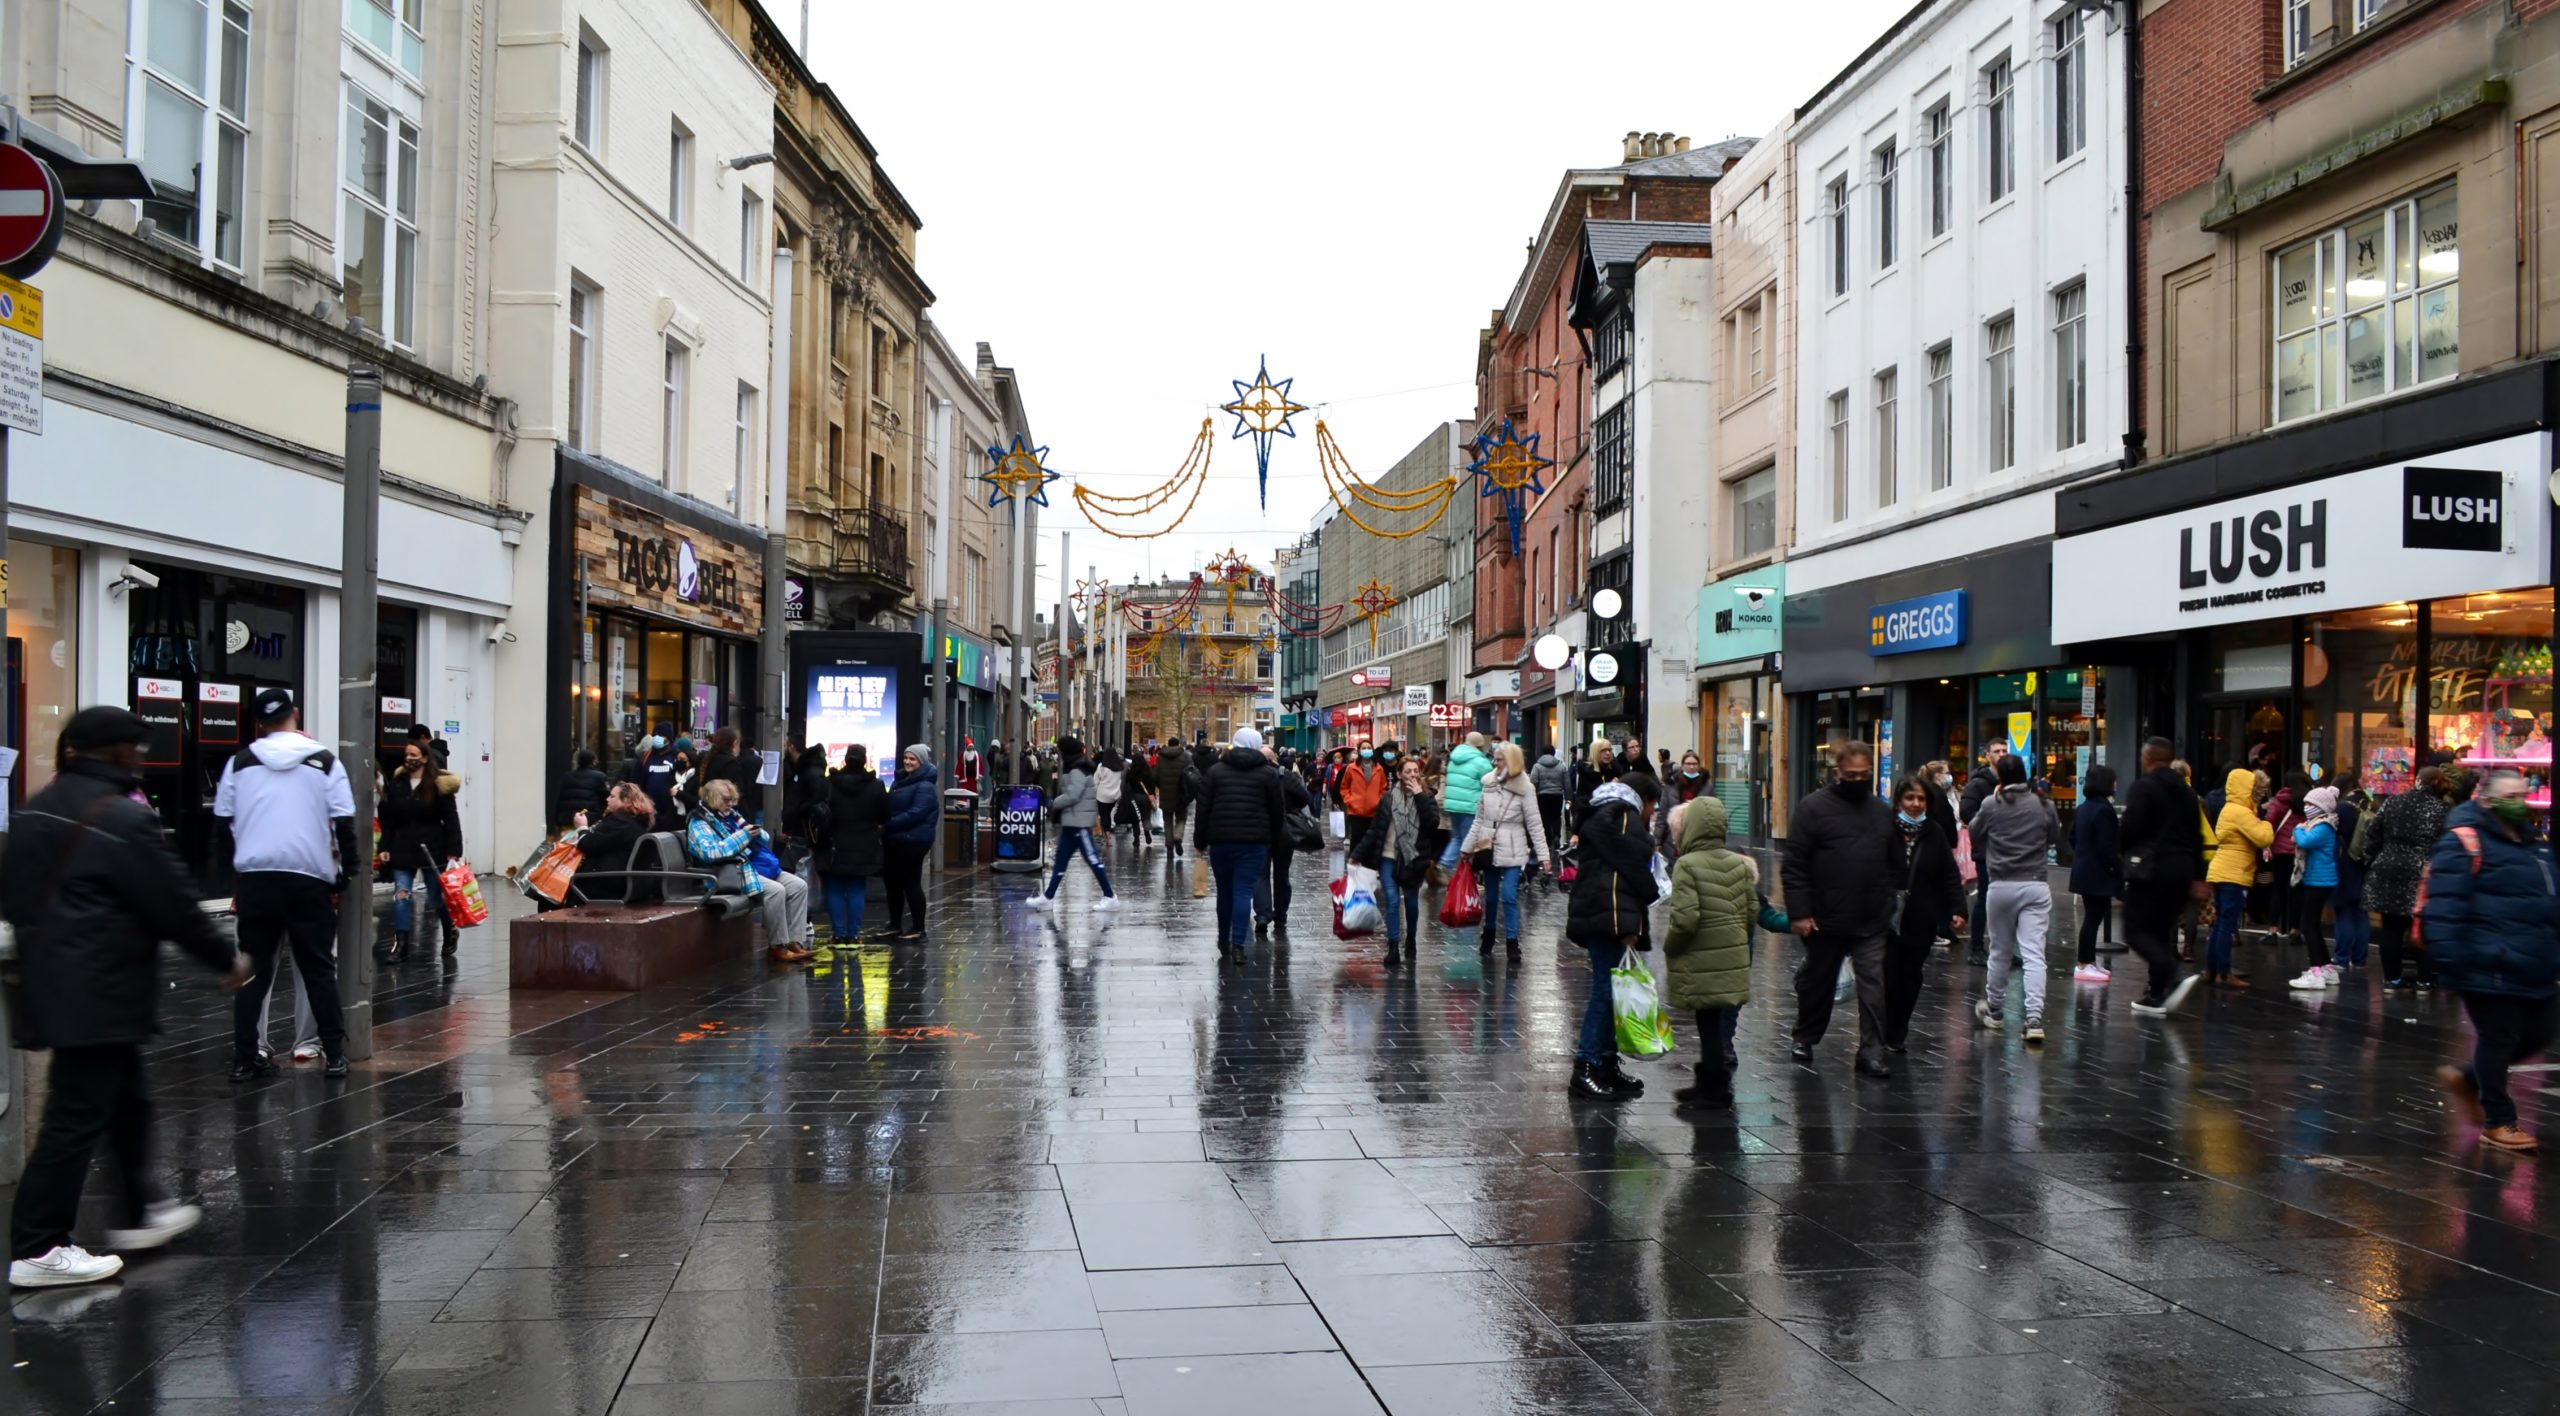 Leicester is part of Historic England's High Street Heritage Action Zones Cultural Programme